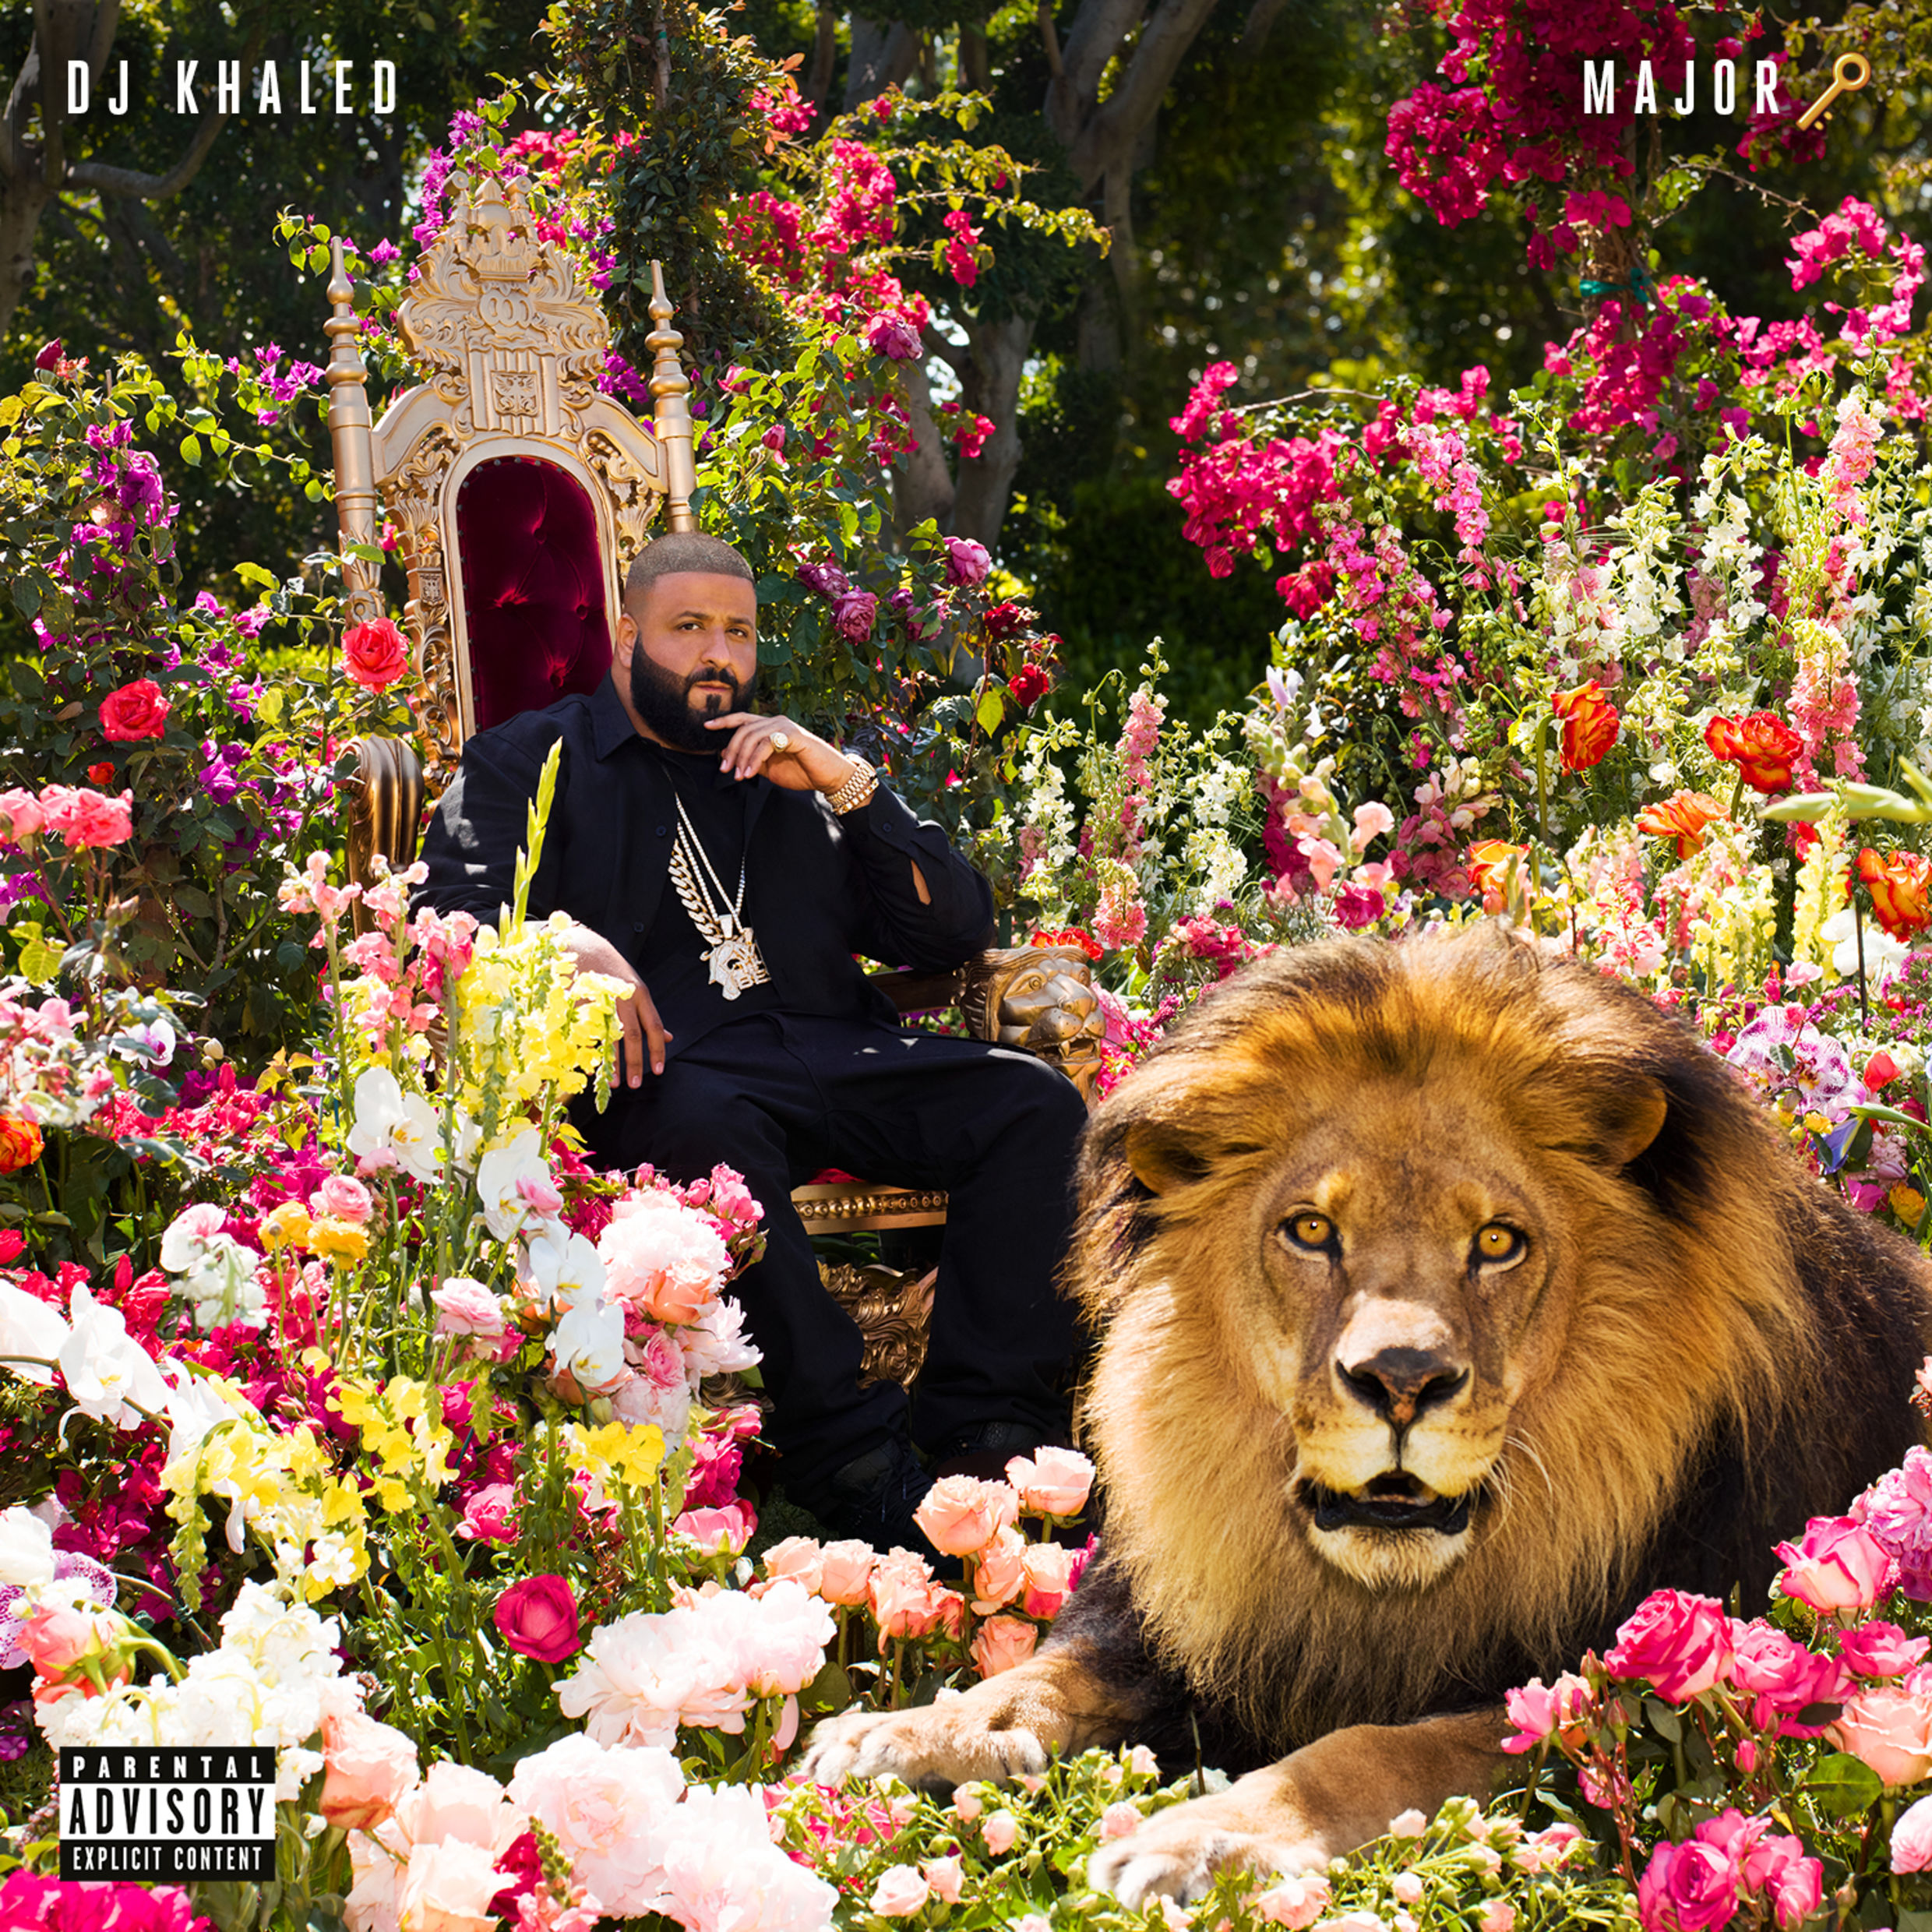 Major Key - DJ Khaled